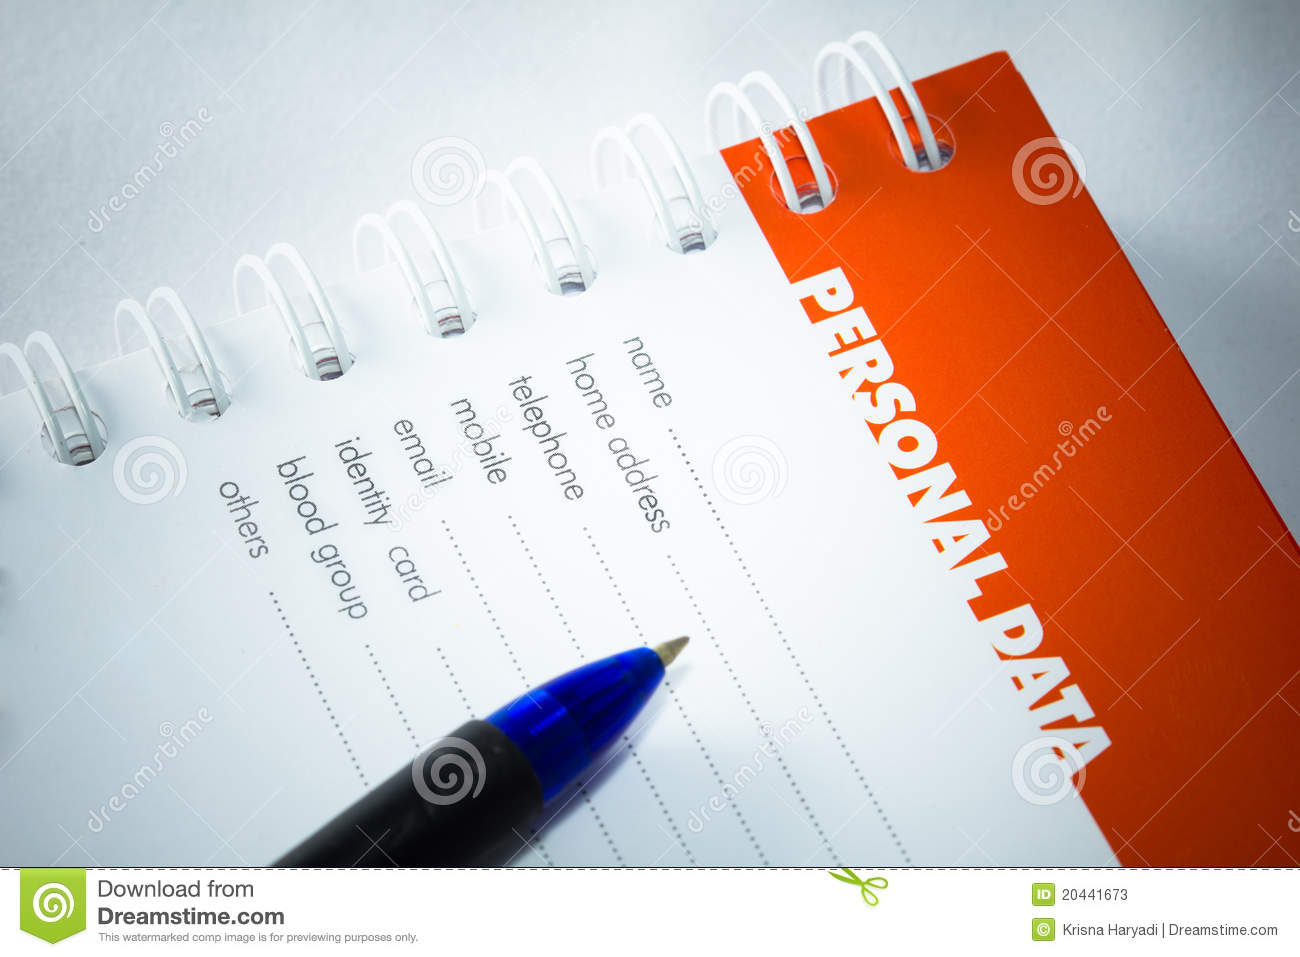 Data sheet clipart svg transparent library Personal Data. Stock Photos - Image: 20441673 svg transparent library